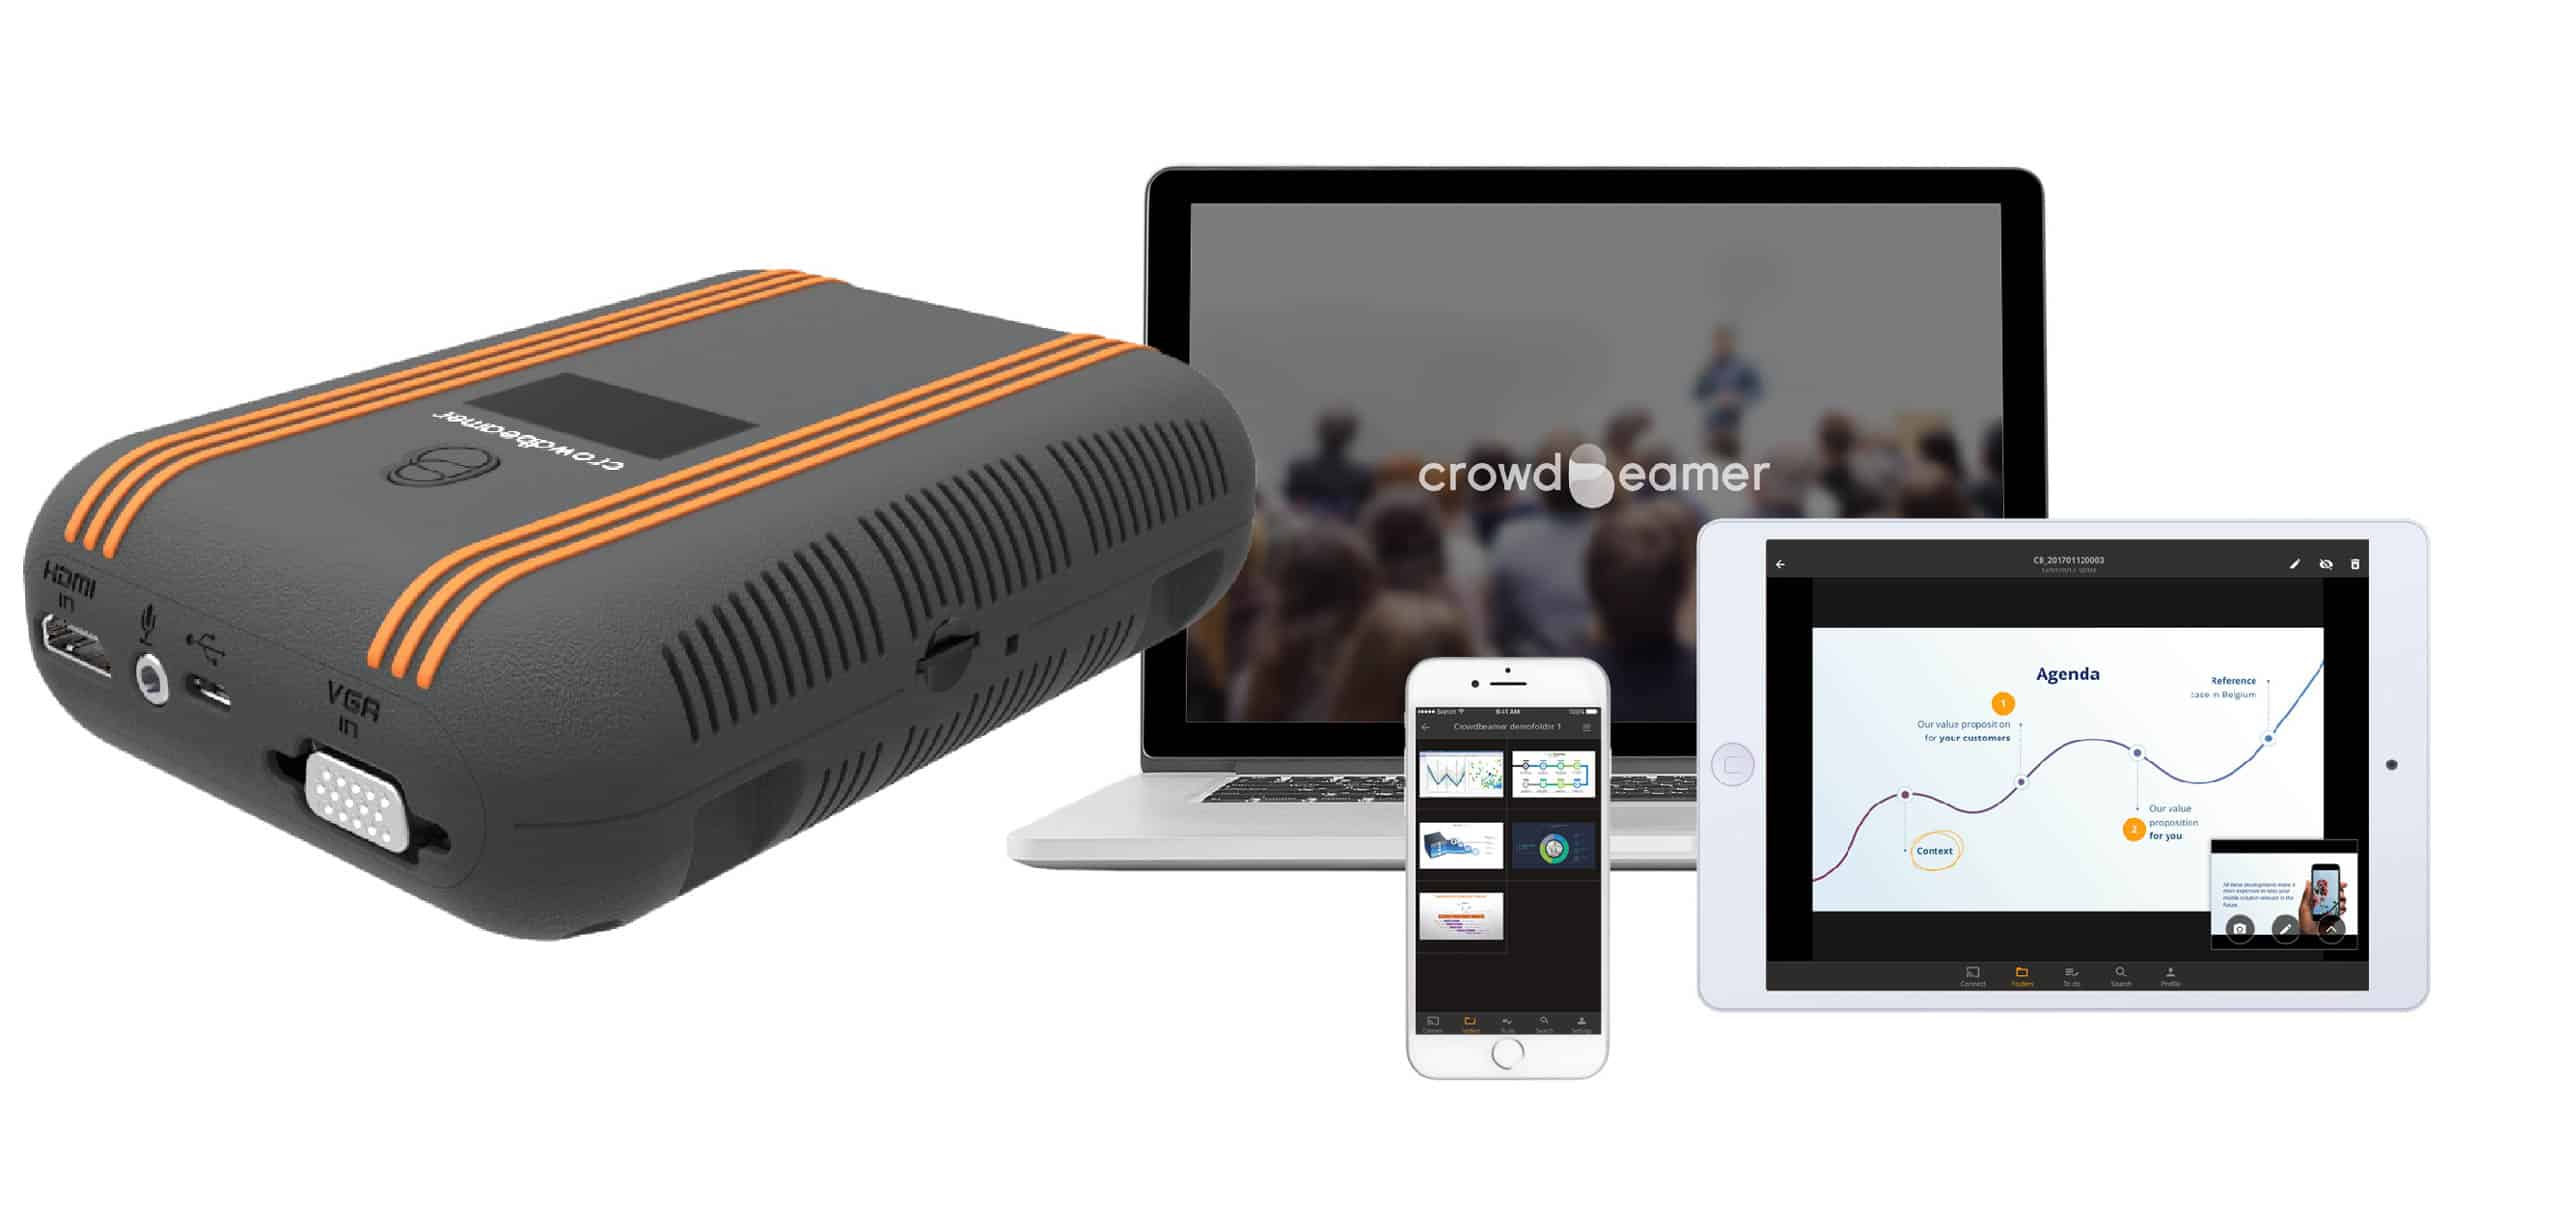 crowdbeamer - a 1 to many wireless screen mirroring device